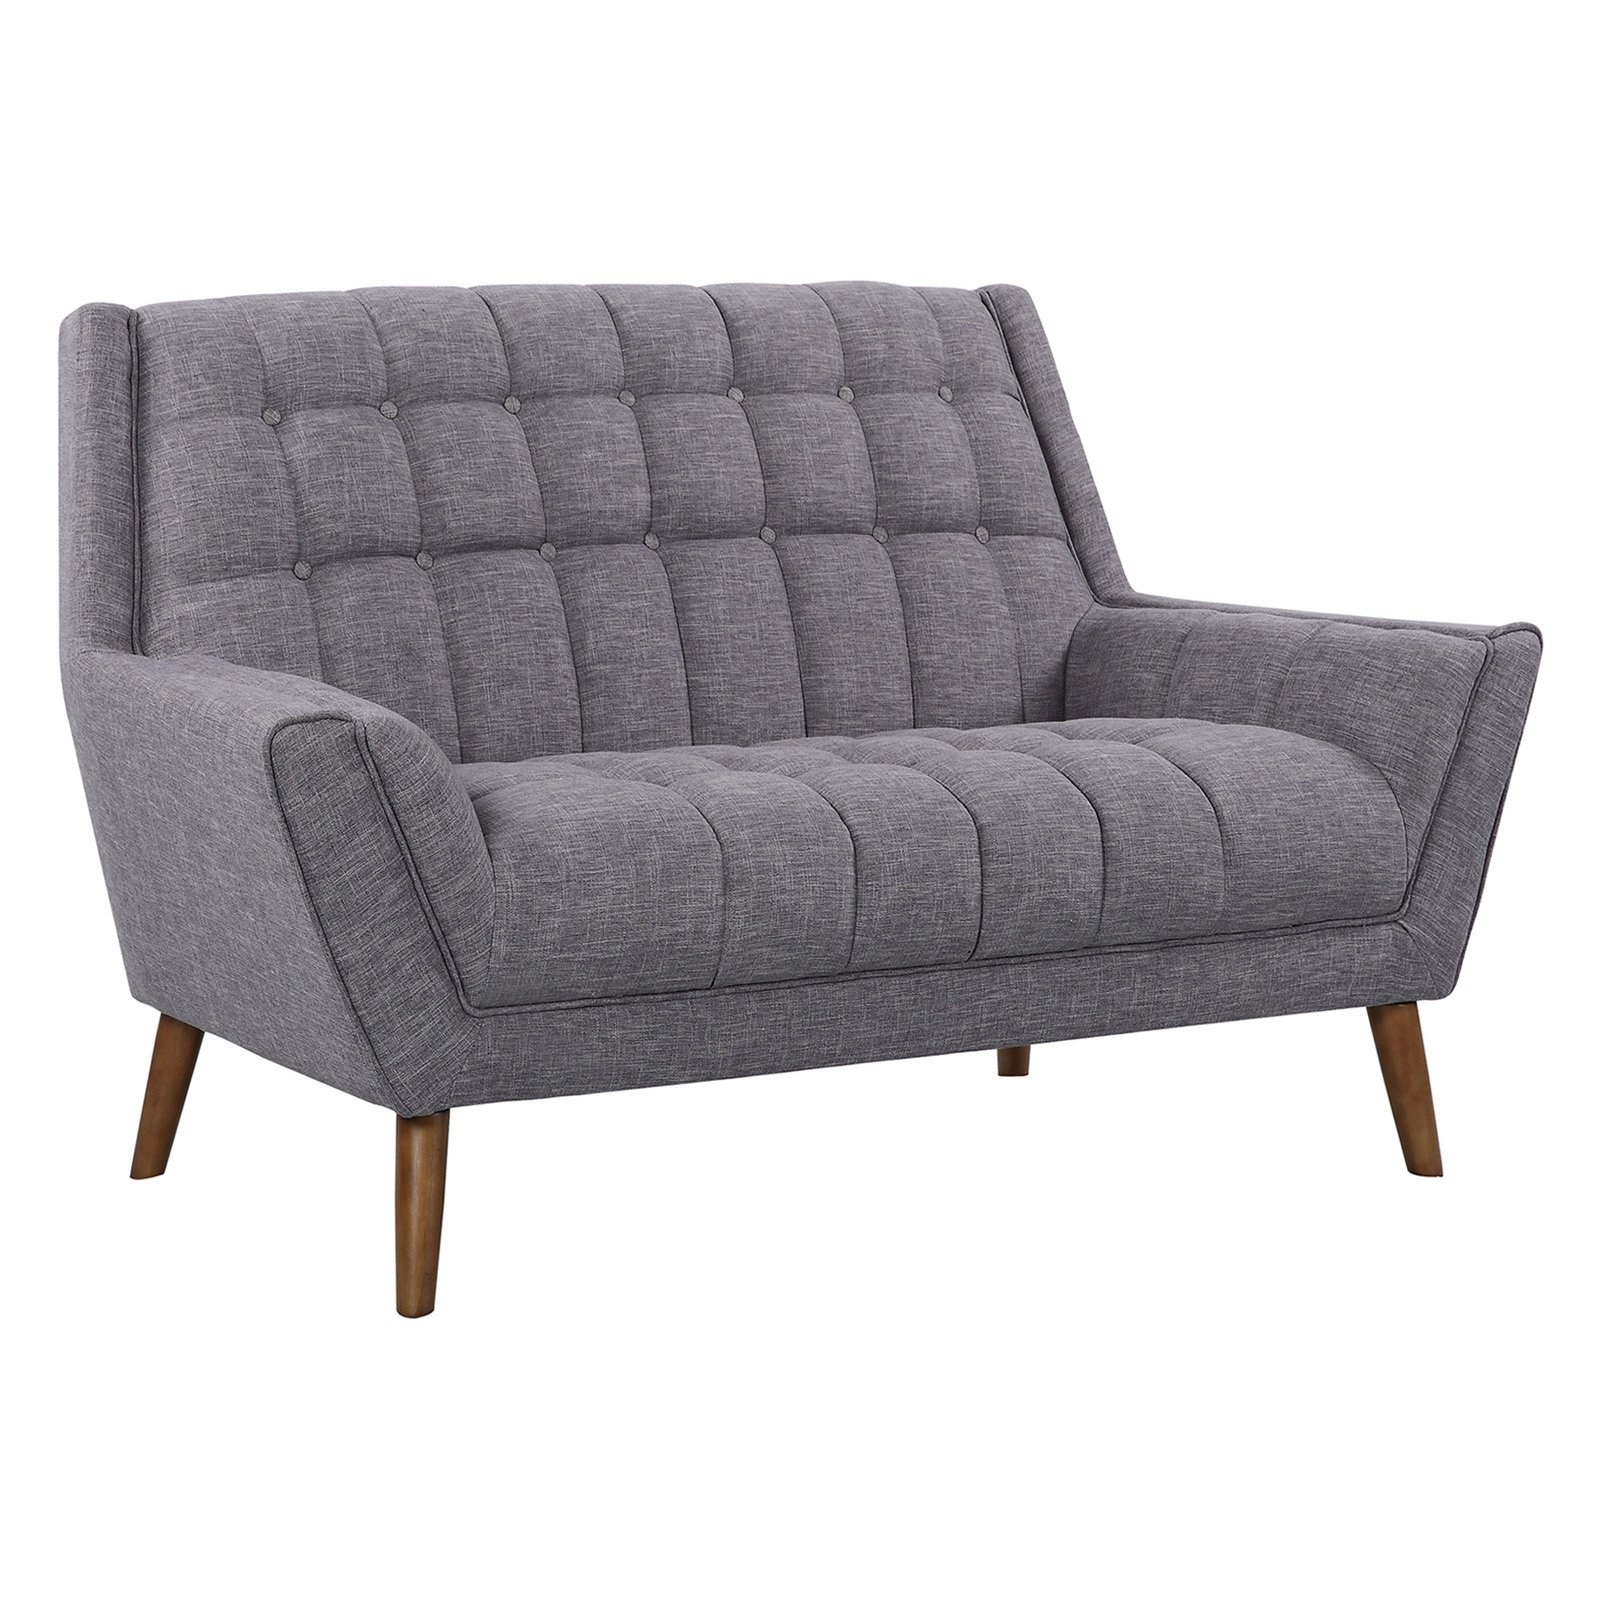 Armen Living Cobra Mid-Century Modern Loveseat with Linen and Walnut Legs